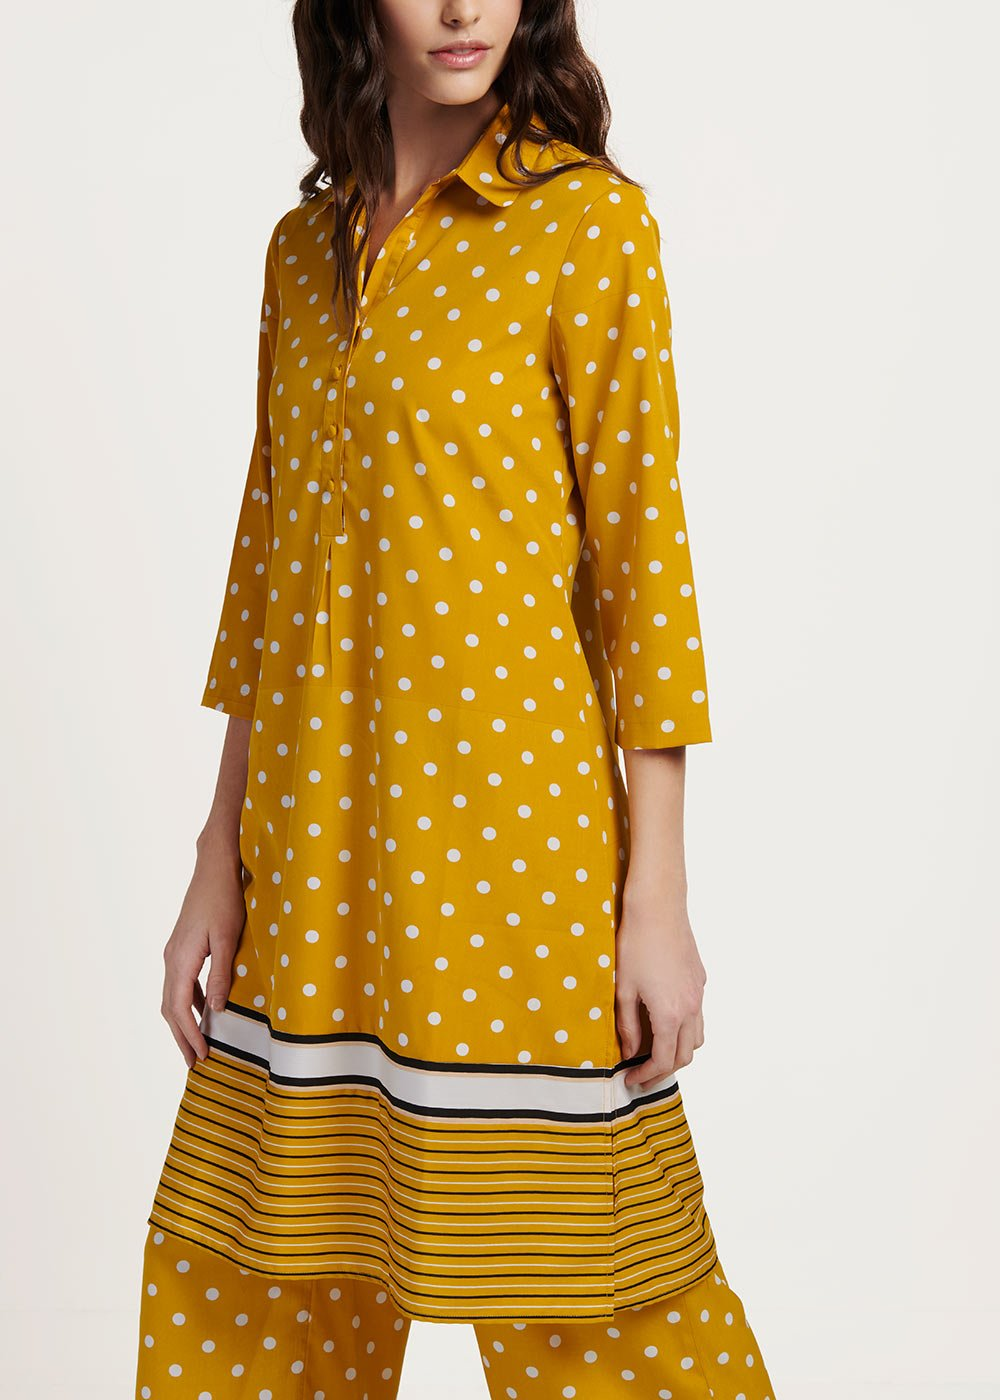 Camely shirtdress with polka dot print - Sole\ White\ Pois - Woman